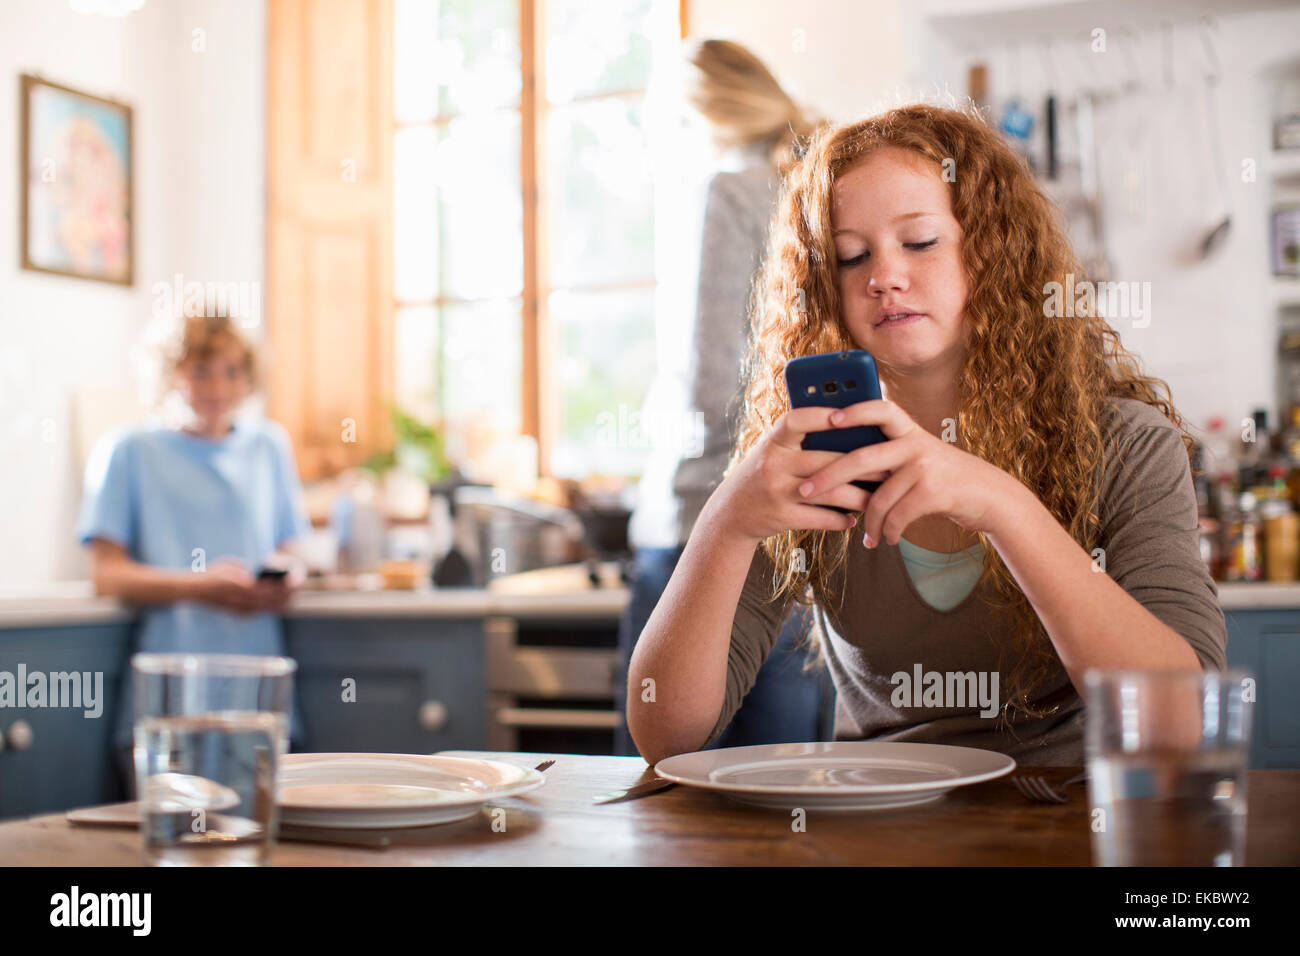 Teenage girl using smartphone at dining table - Stock Image